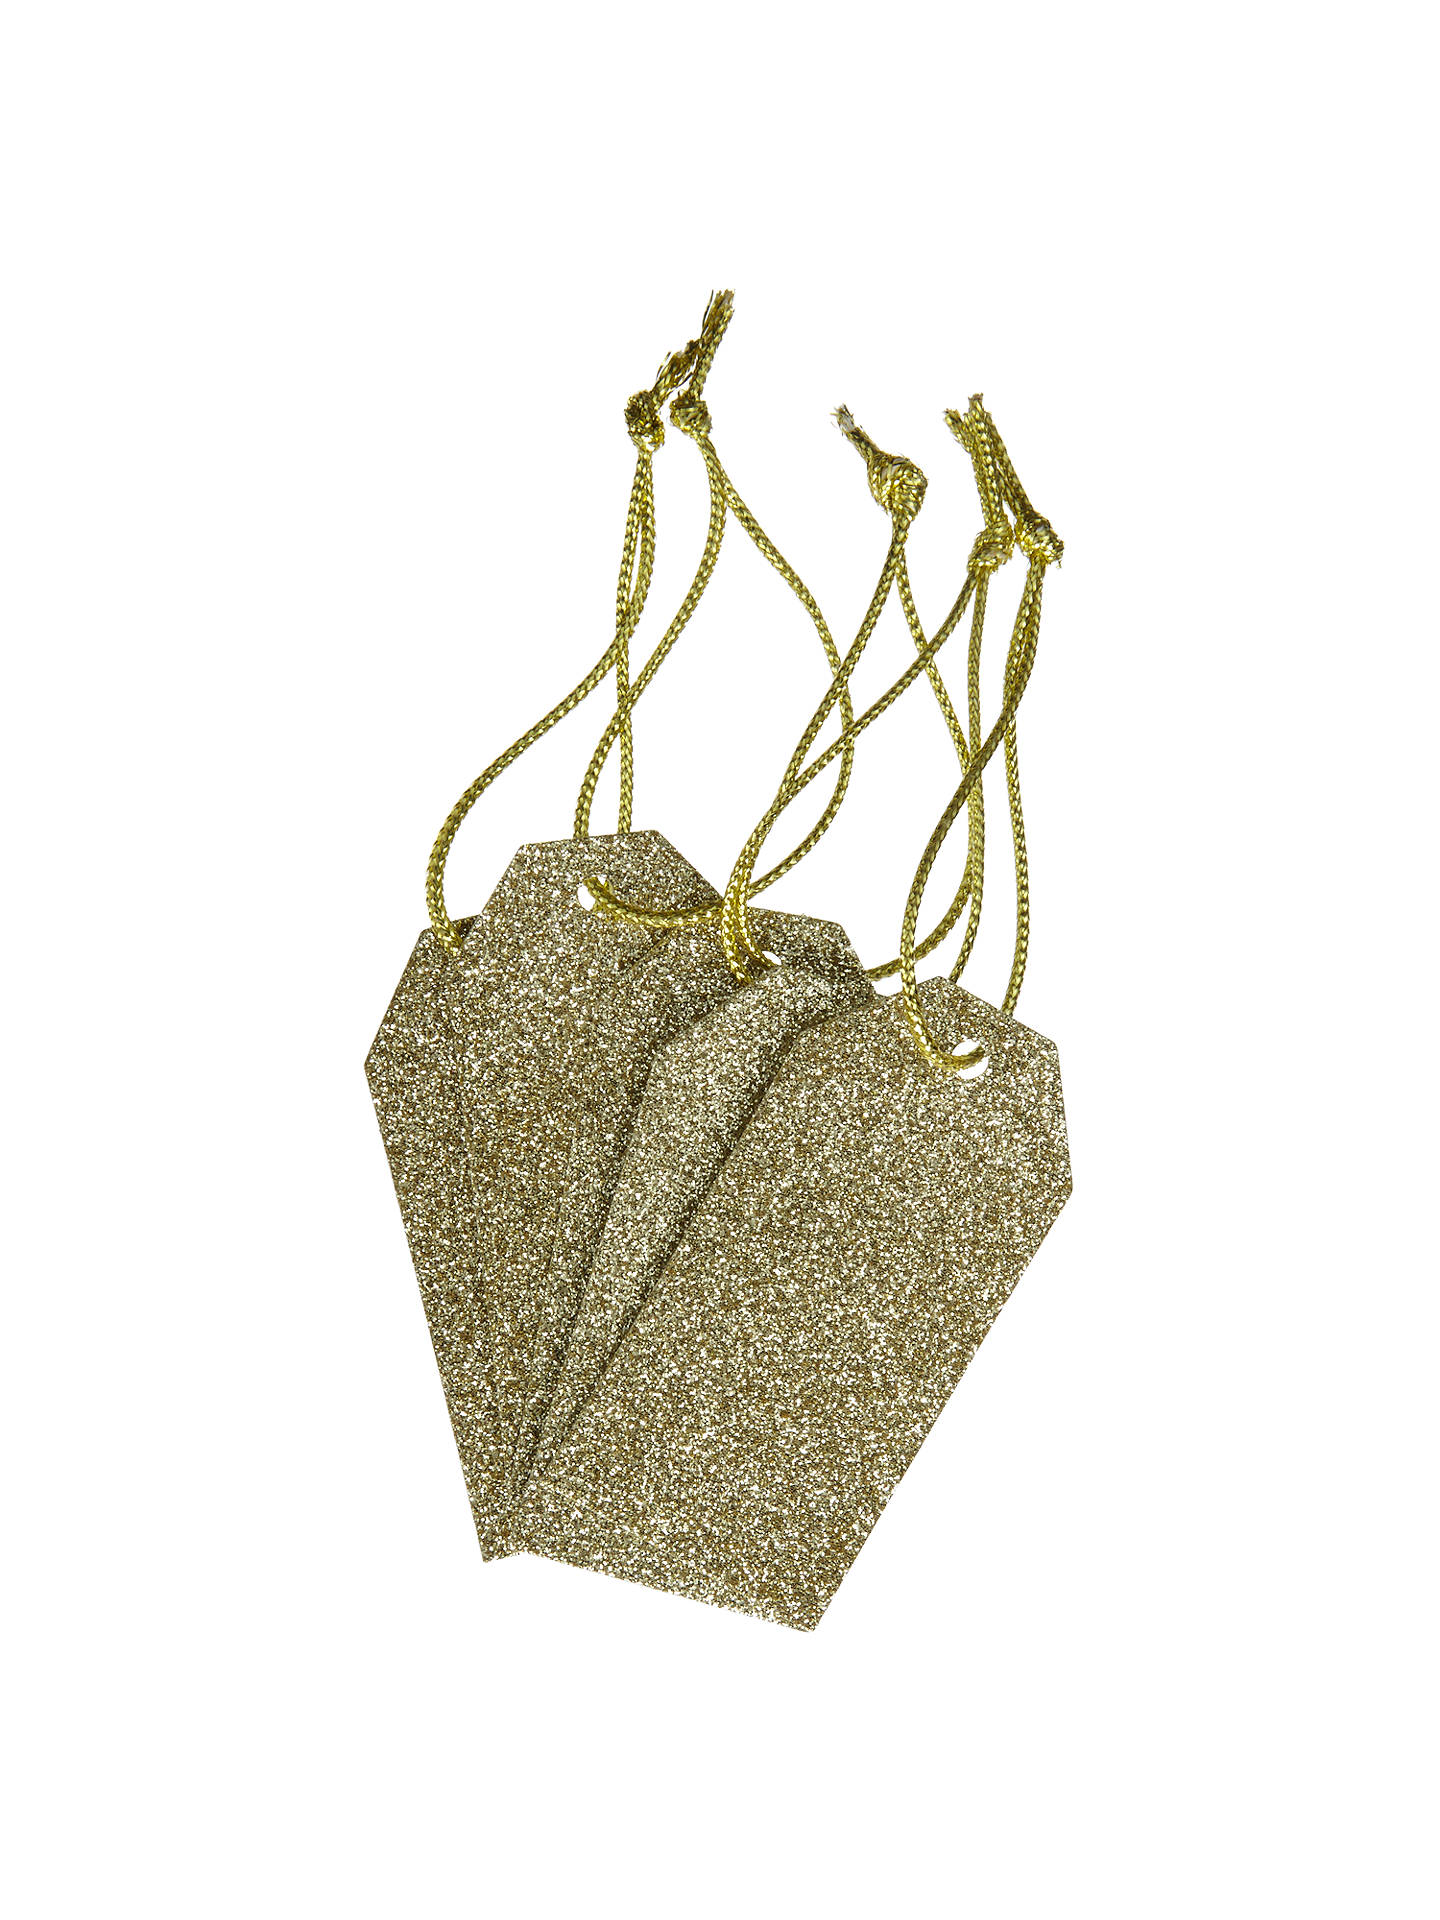 Buy John Lewis & Partners Glitter Gift Tags, Pack of 5, Gold Online at johnlewis.com